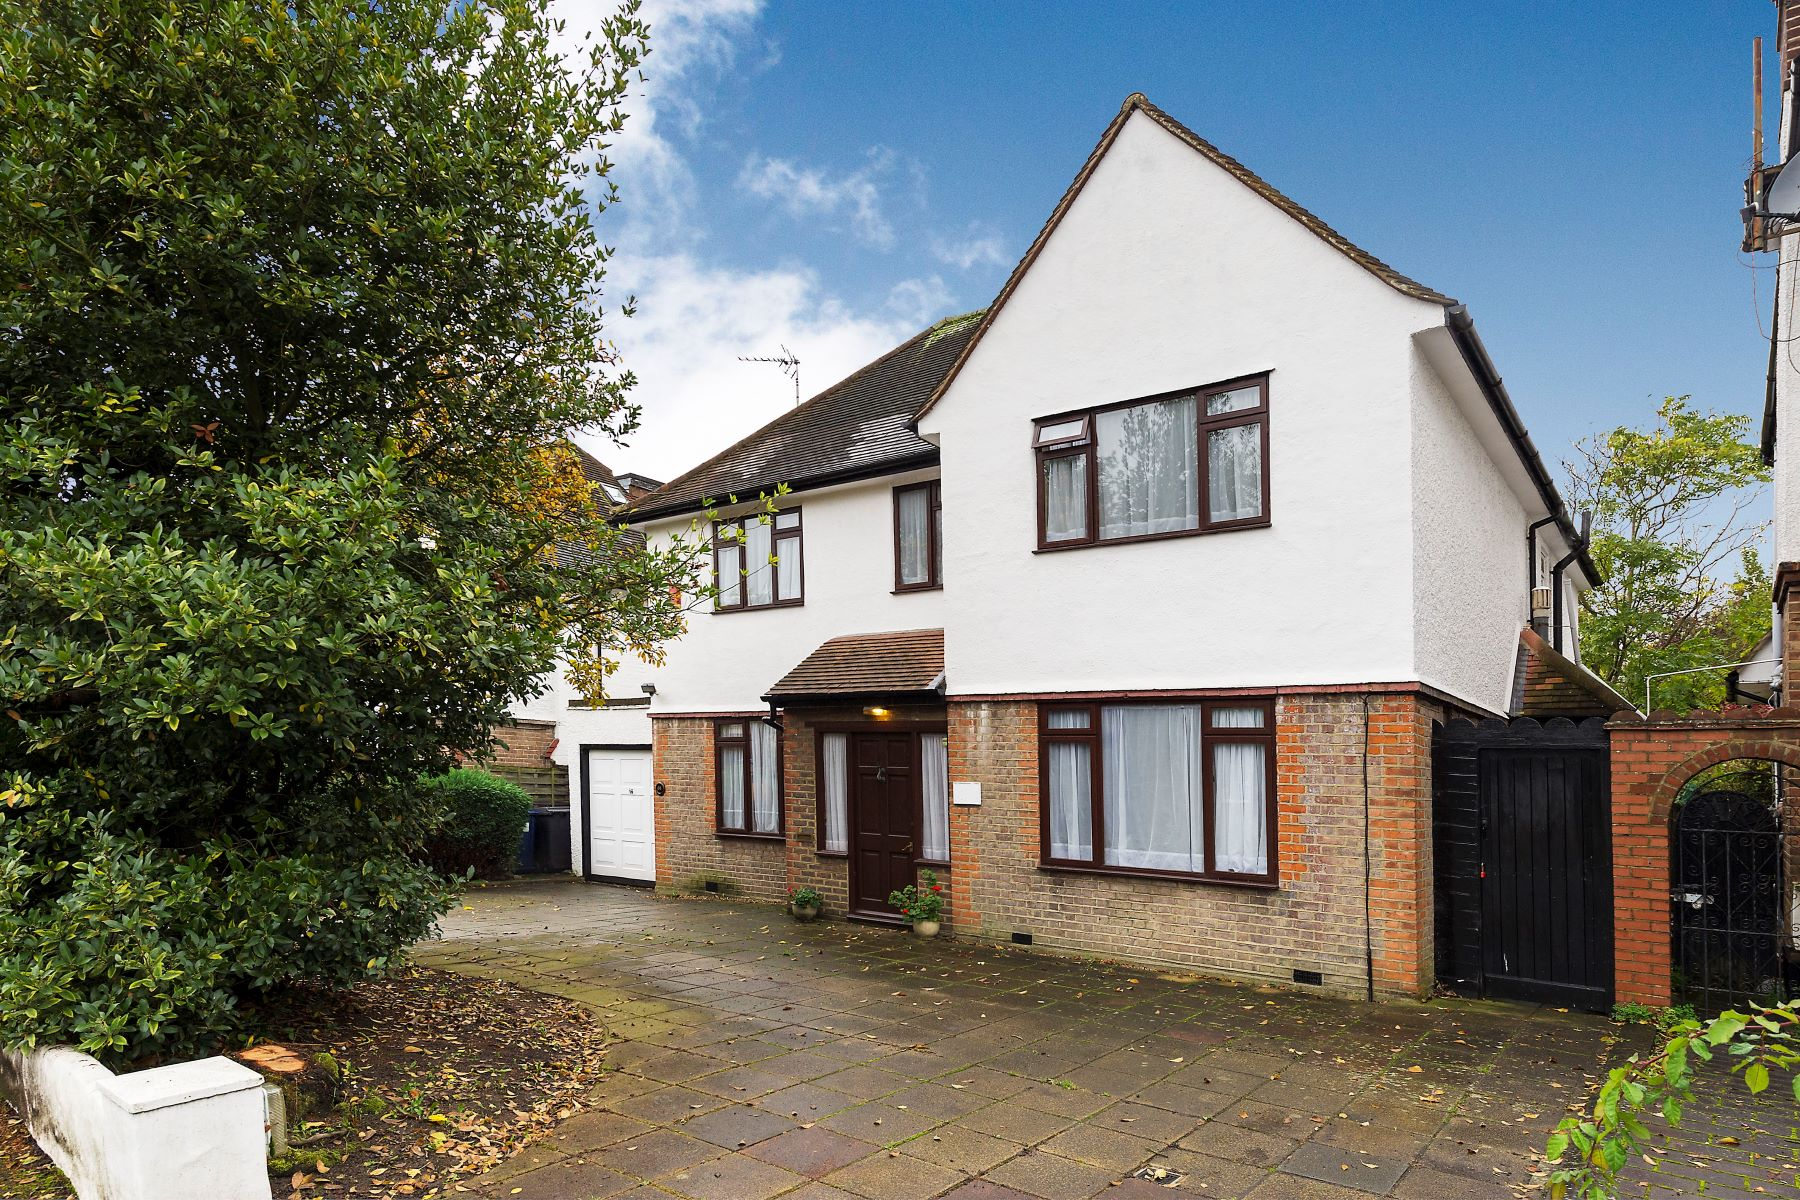 Single Family Homes for Sale at 64 Flower Lane London, England NW7 2JL United Kingdom